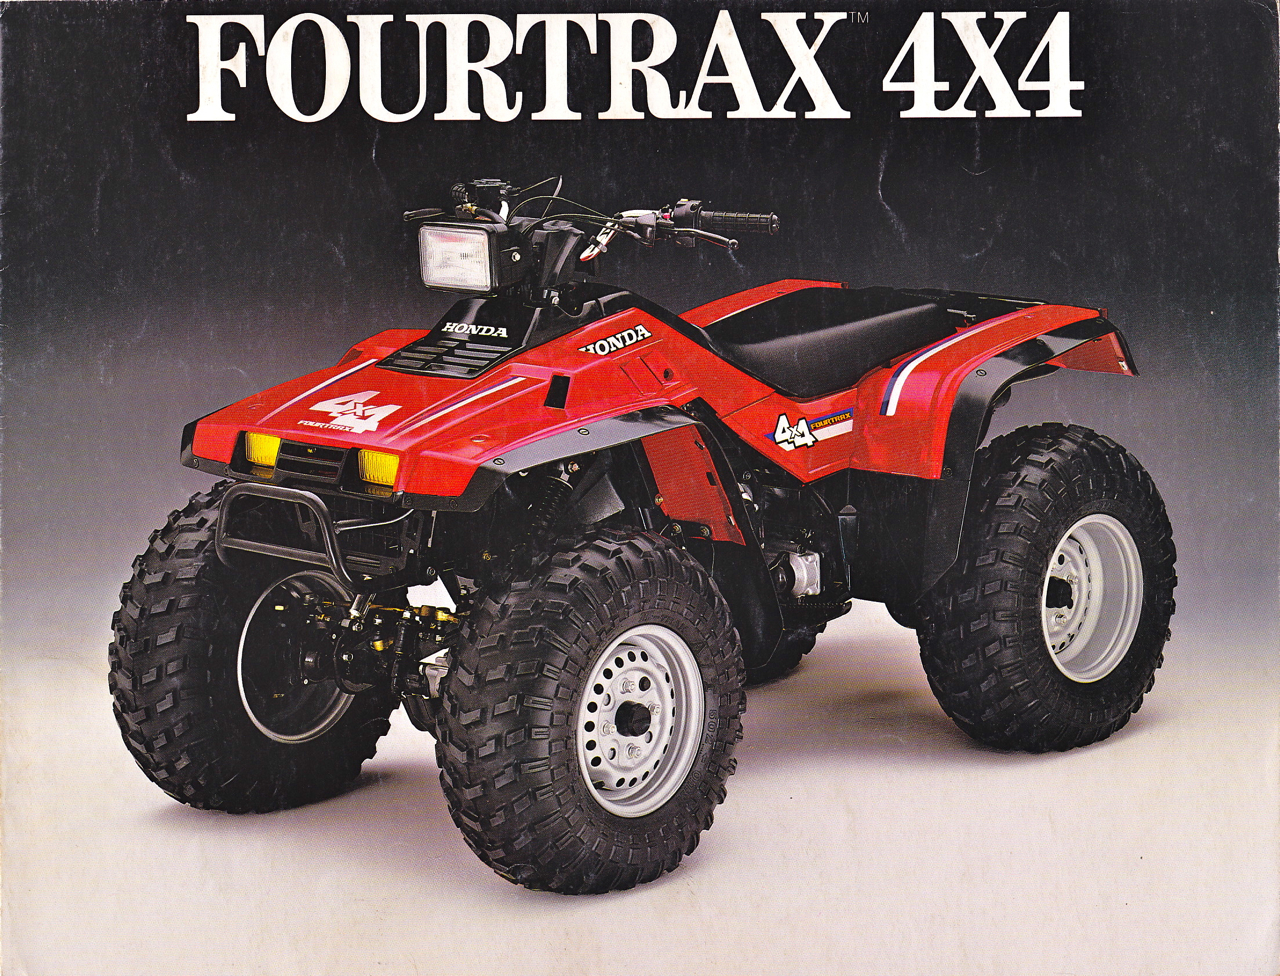 Мотоцикл Honda TRX 350 FOURTRAX 4x4 1986